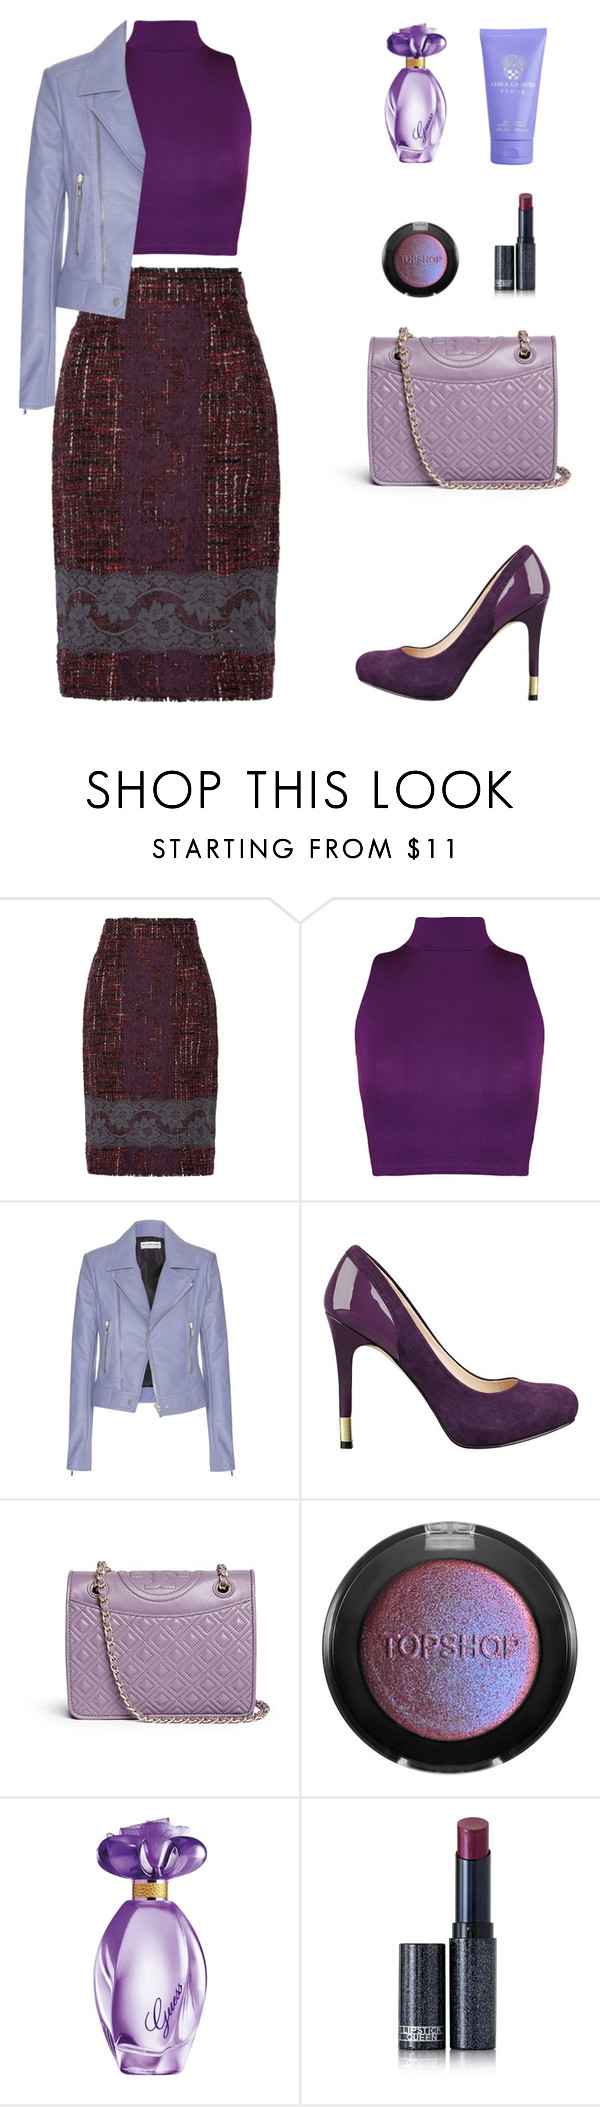 """""""Lavender"""" by amlhrs ❤ liked on Polyvore featuring Dolce&Gabbana, WearAll, Balenciaga, GUESS, Tory Burch, Topshop, Lipstick Queen, Vince Camuto, women's clothing and women"""